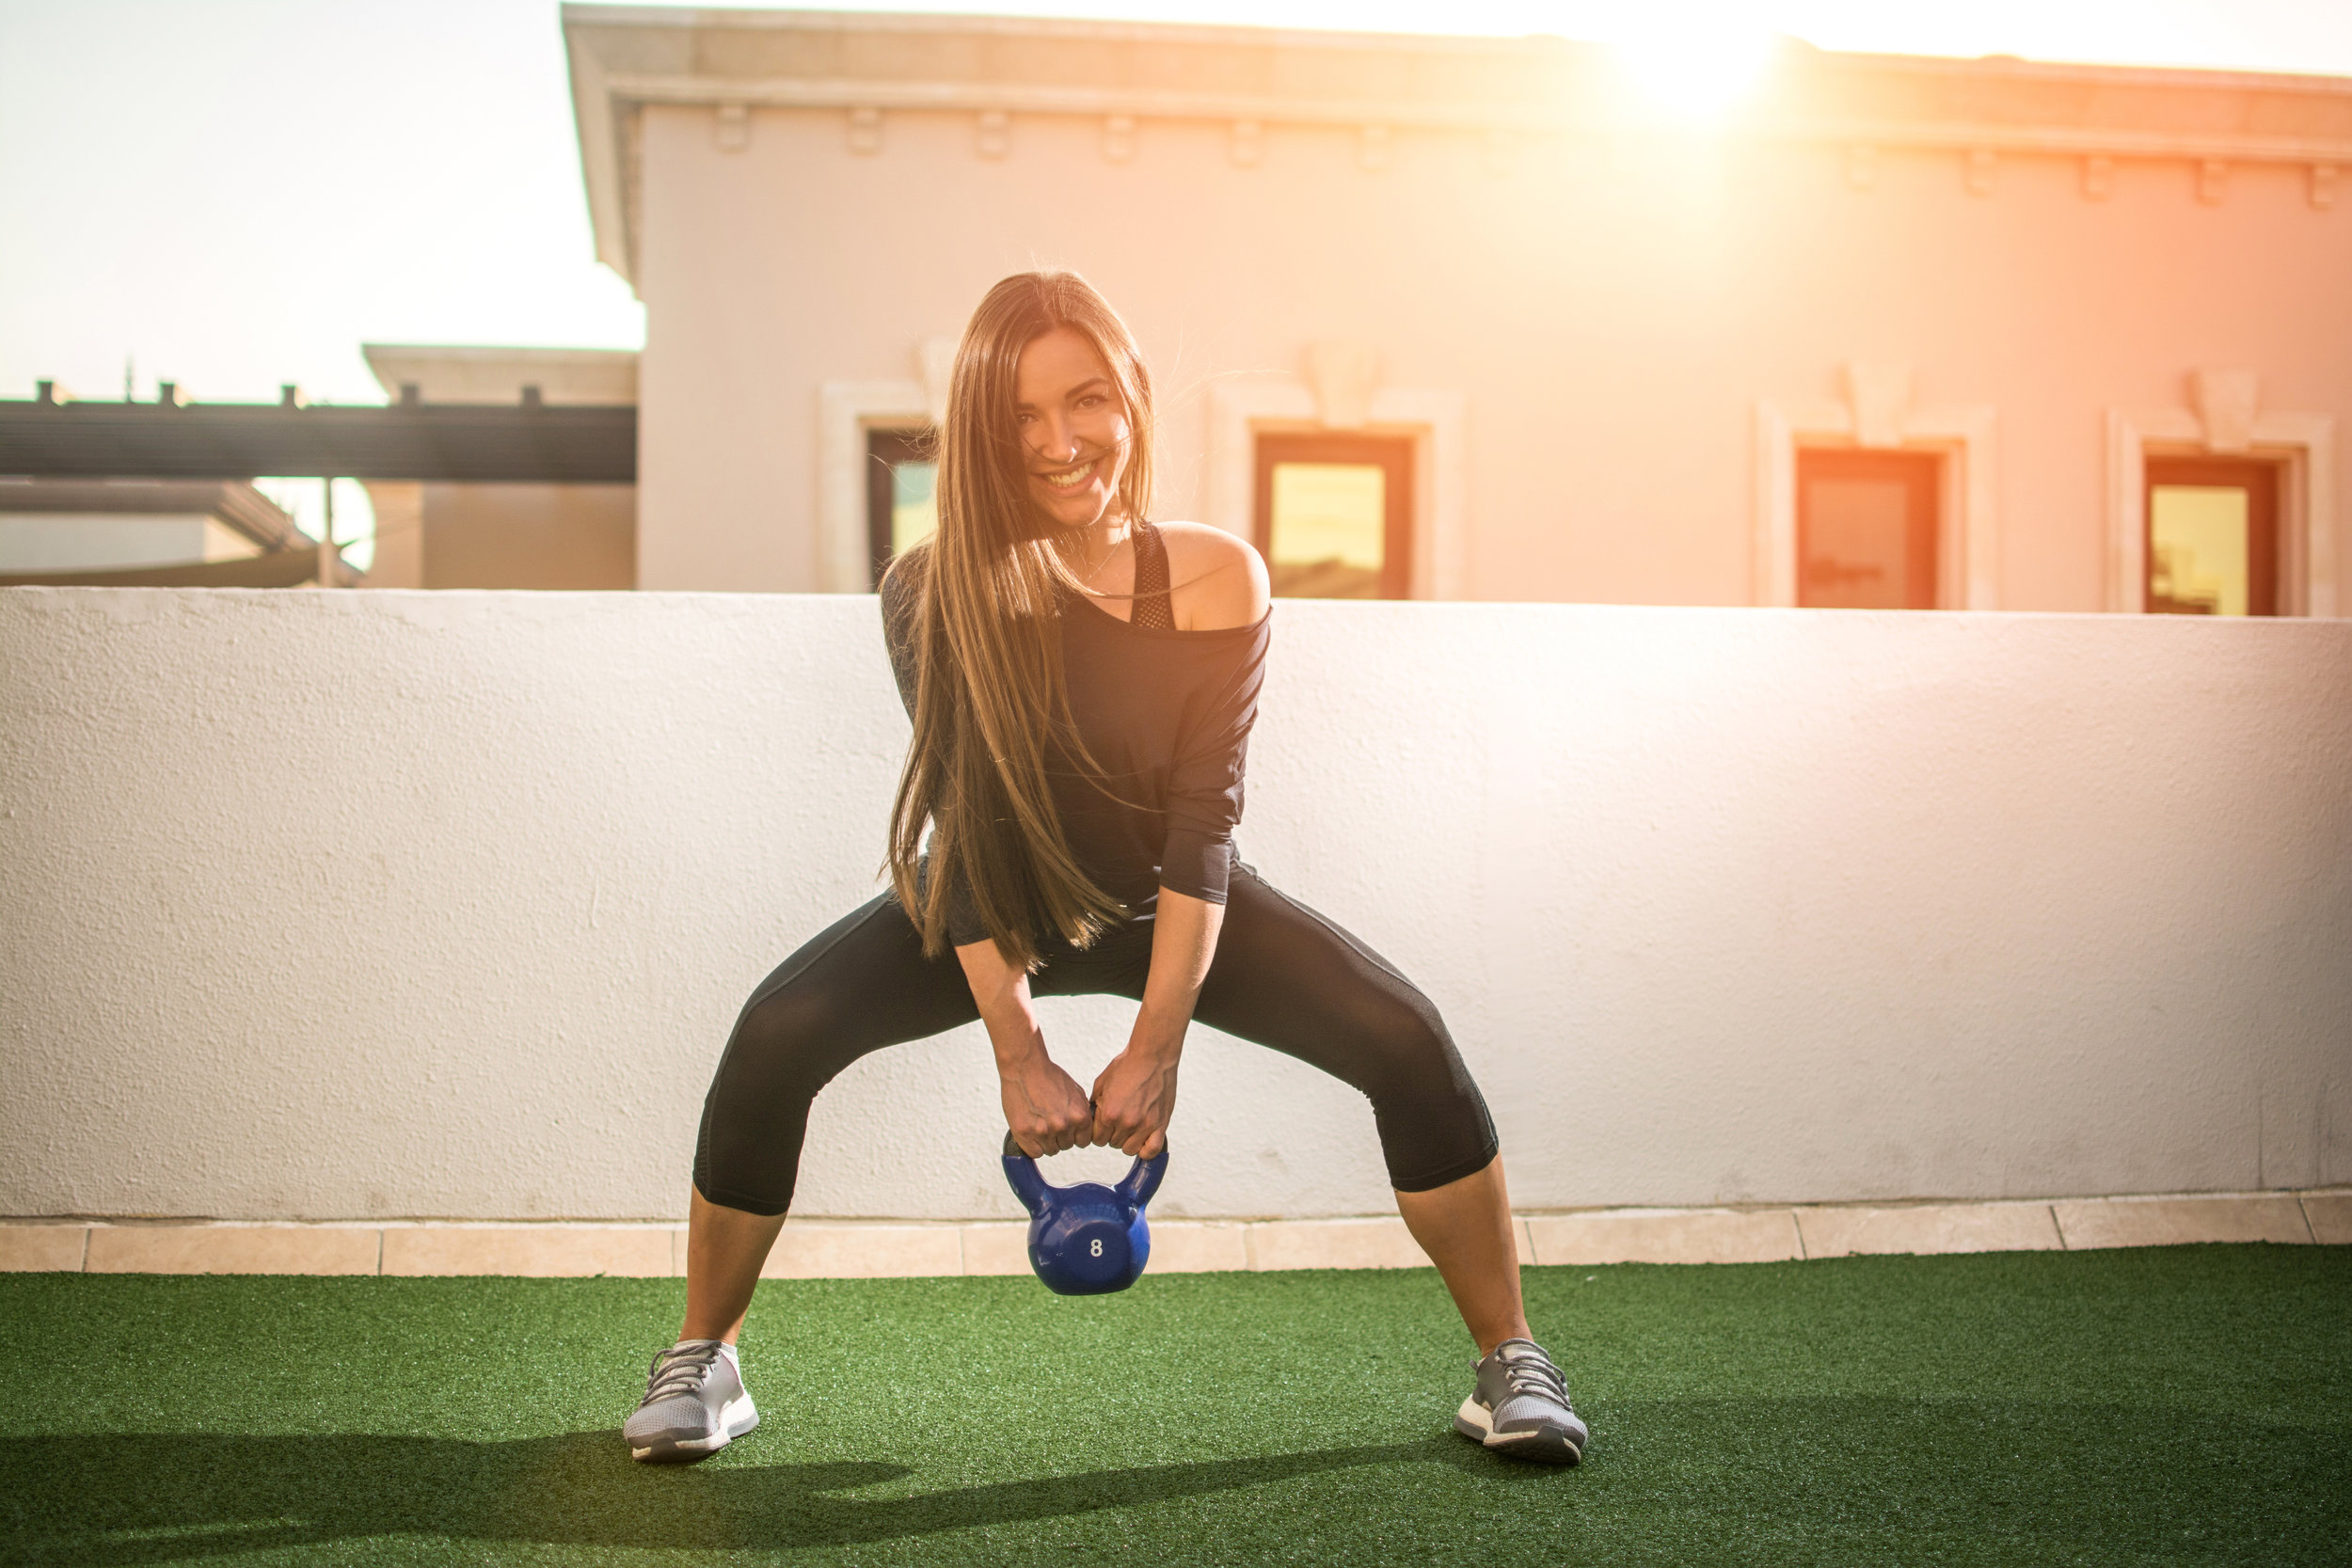 Sporty woman in squat position exercising with kettlebell outdoors during sunset.